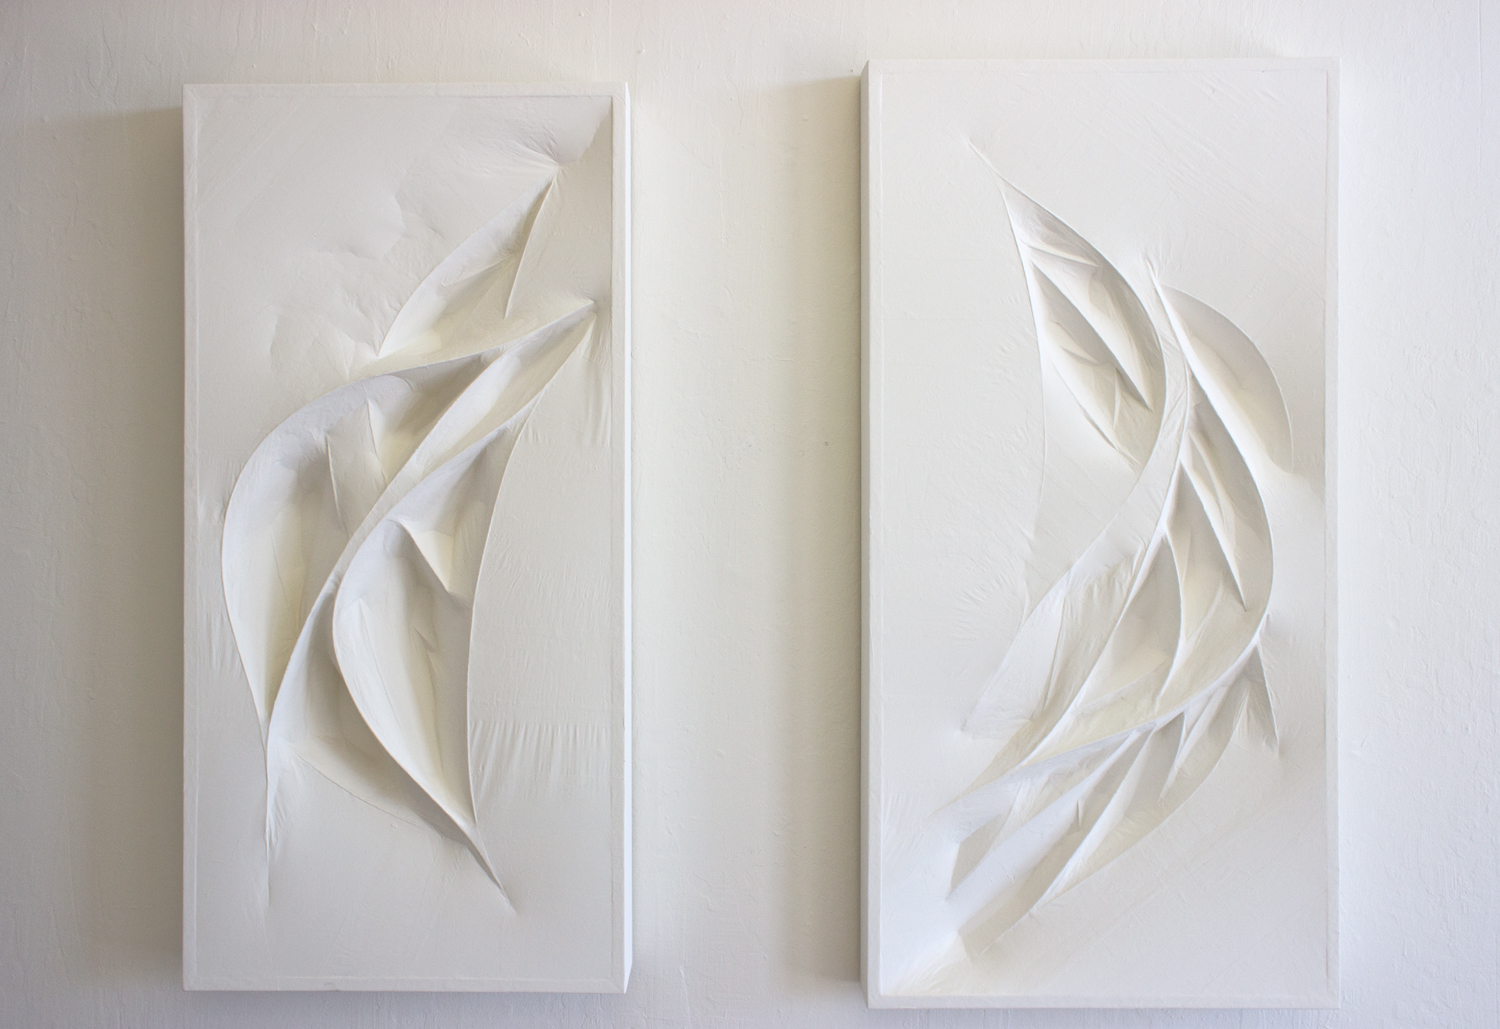 Untitled 1 & 2 (white forms)  2015  Wood panel, wood forms, and paper mache (white tracing paper with gallery white paint)  45 x 23.5 x 4 inches,47.5 x 23.5 x 3 inches